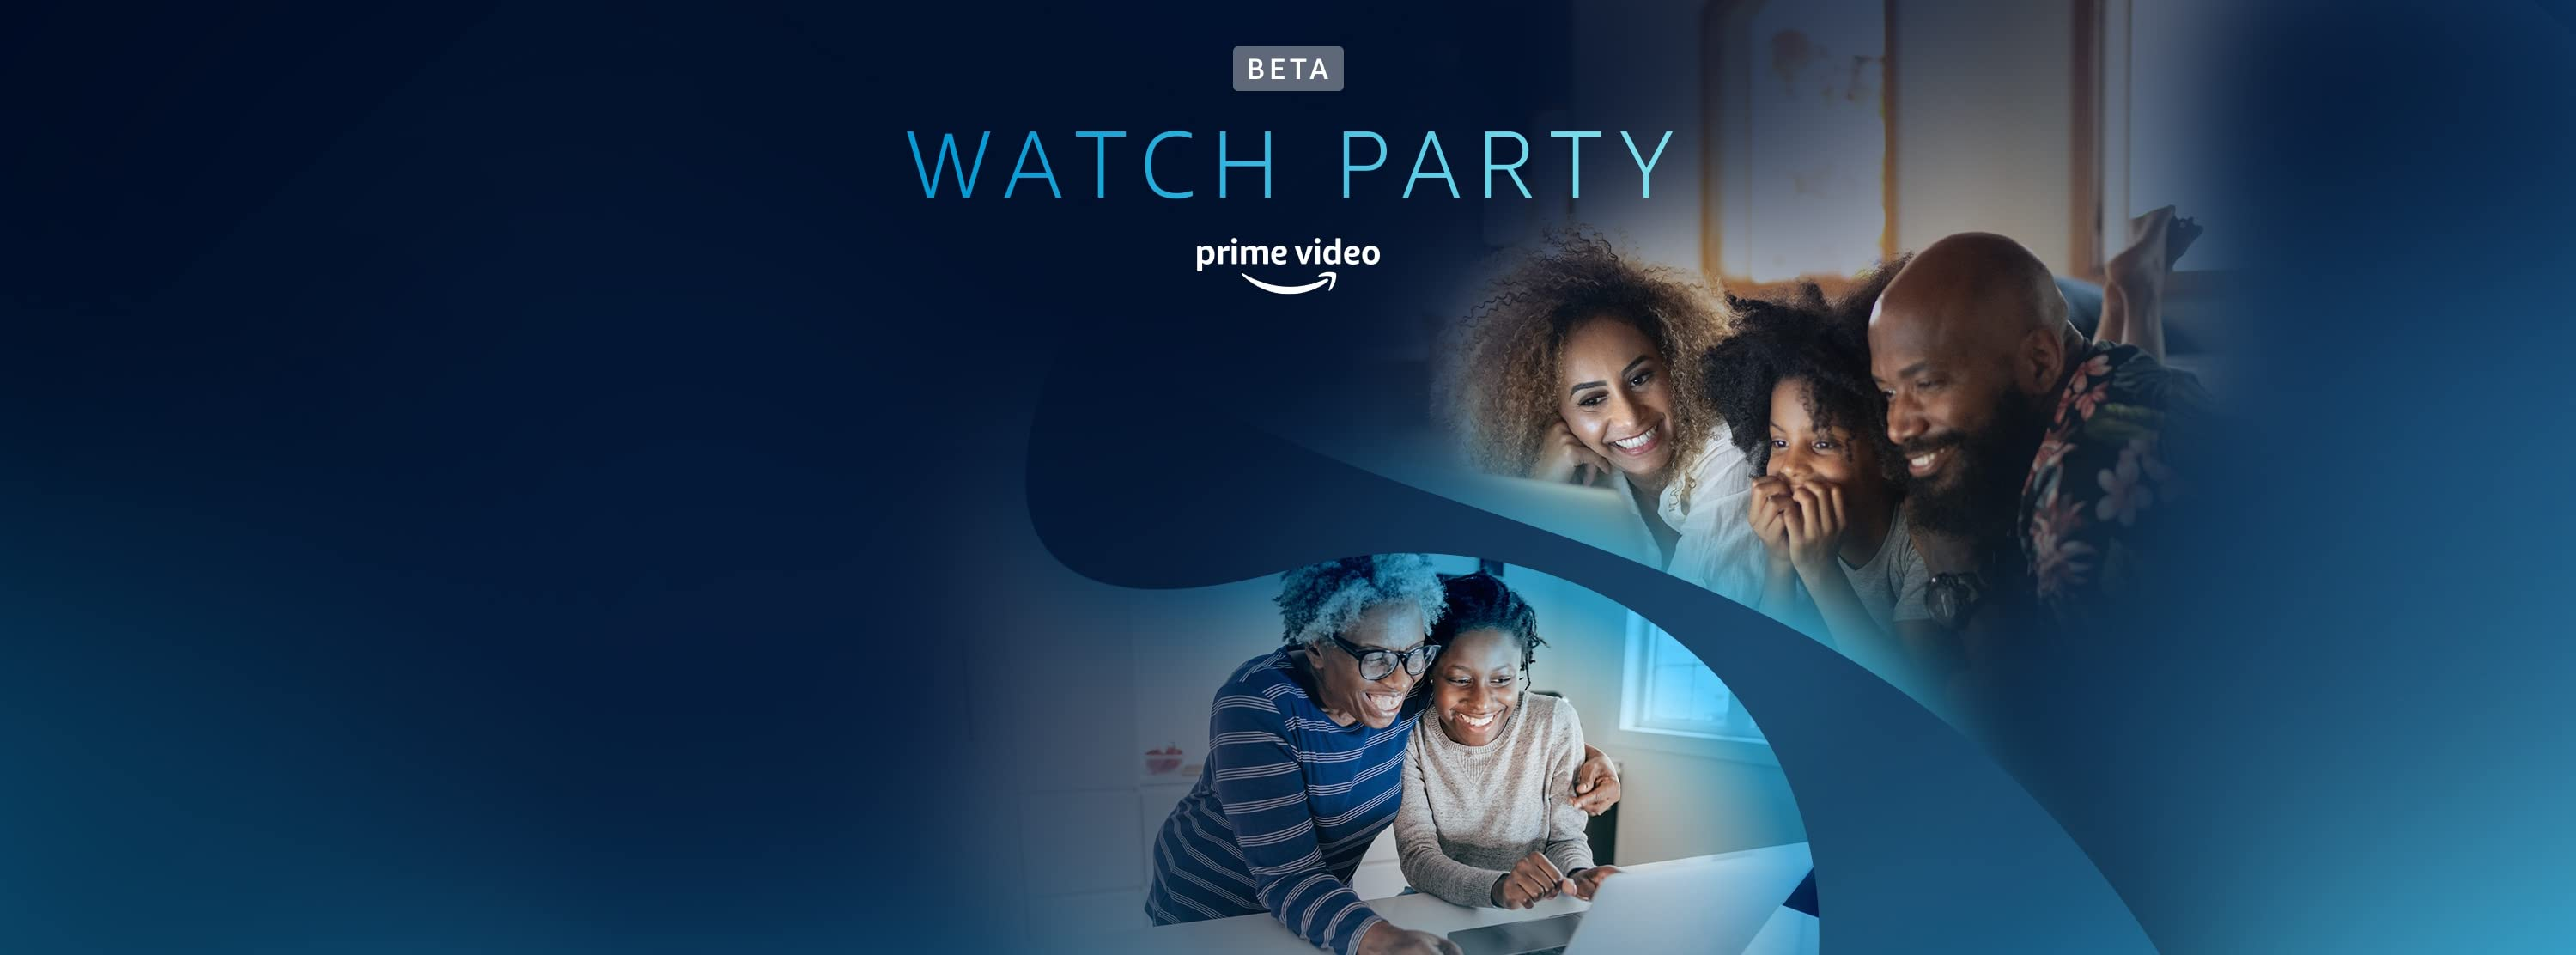 Beta: Watch Party